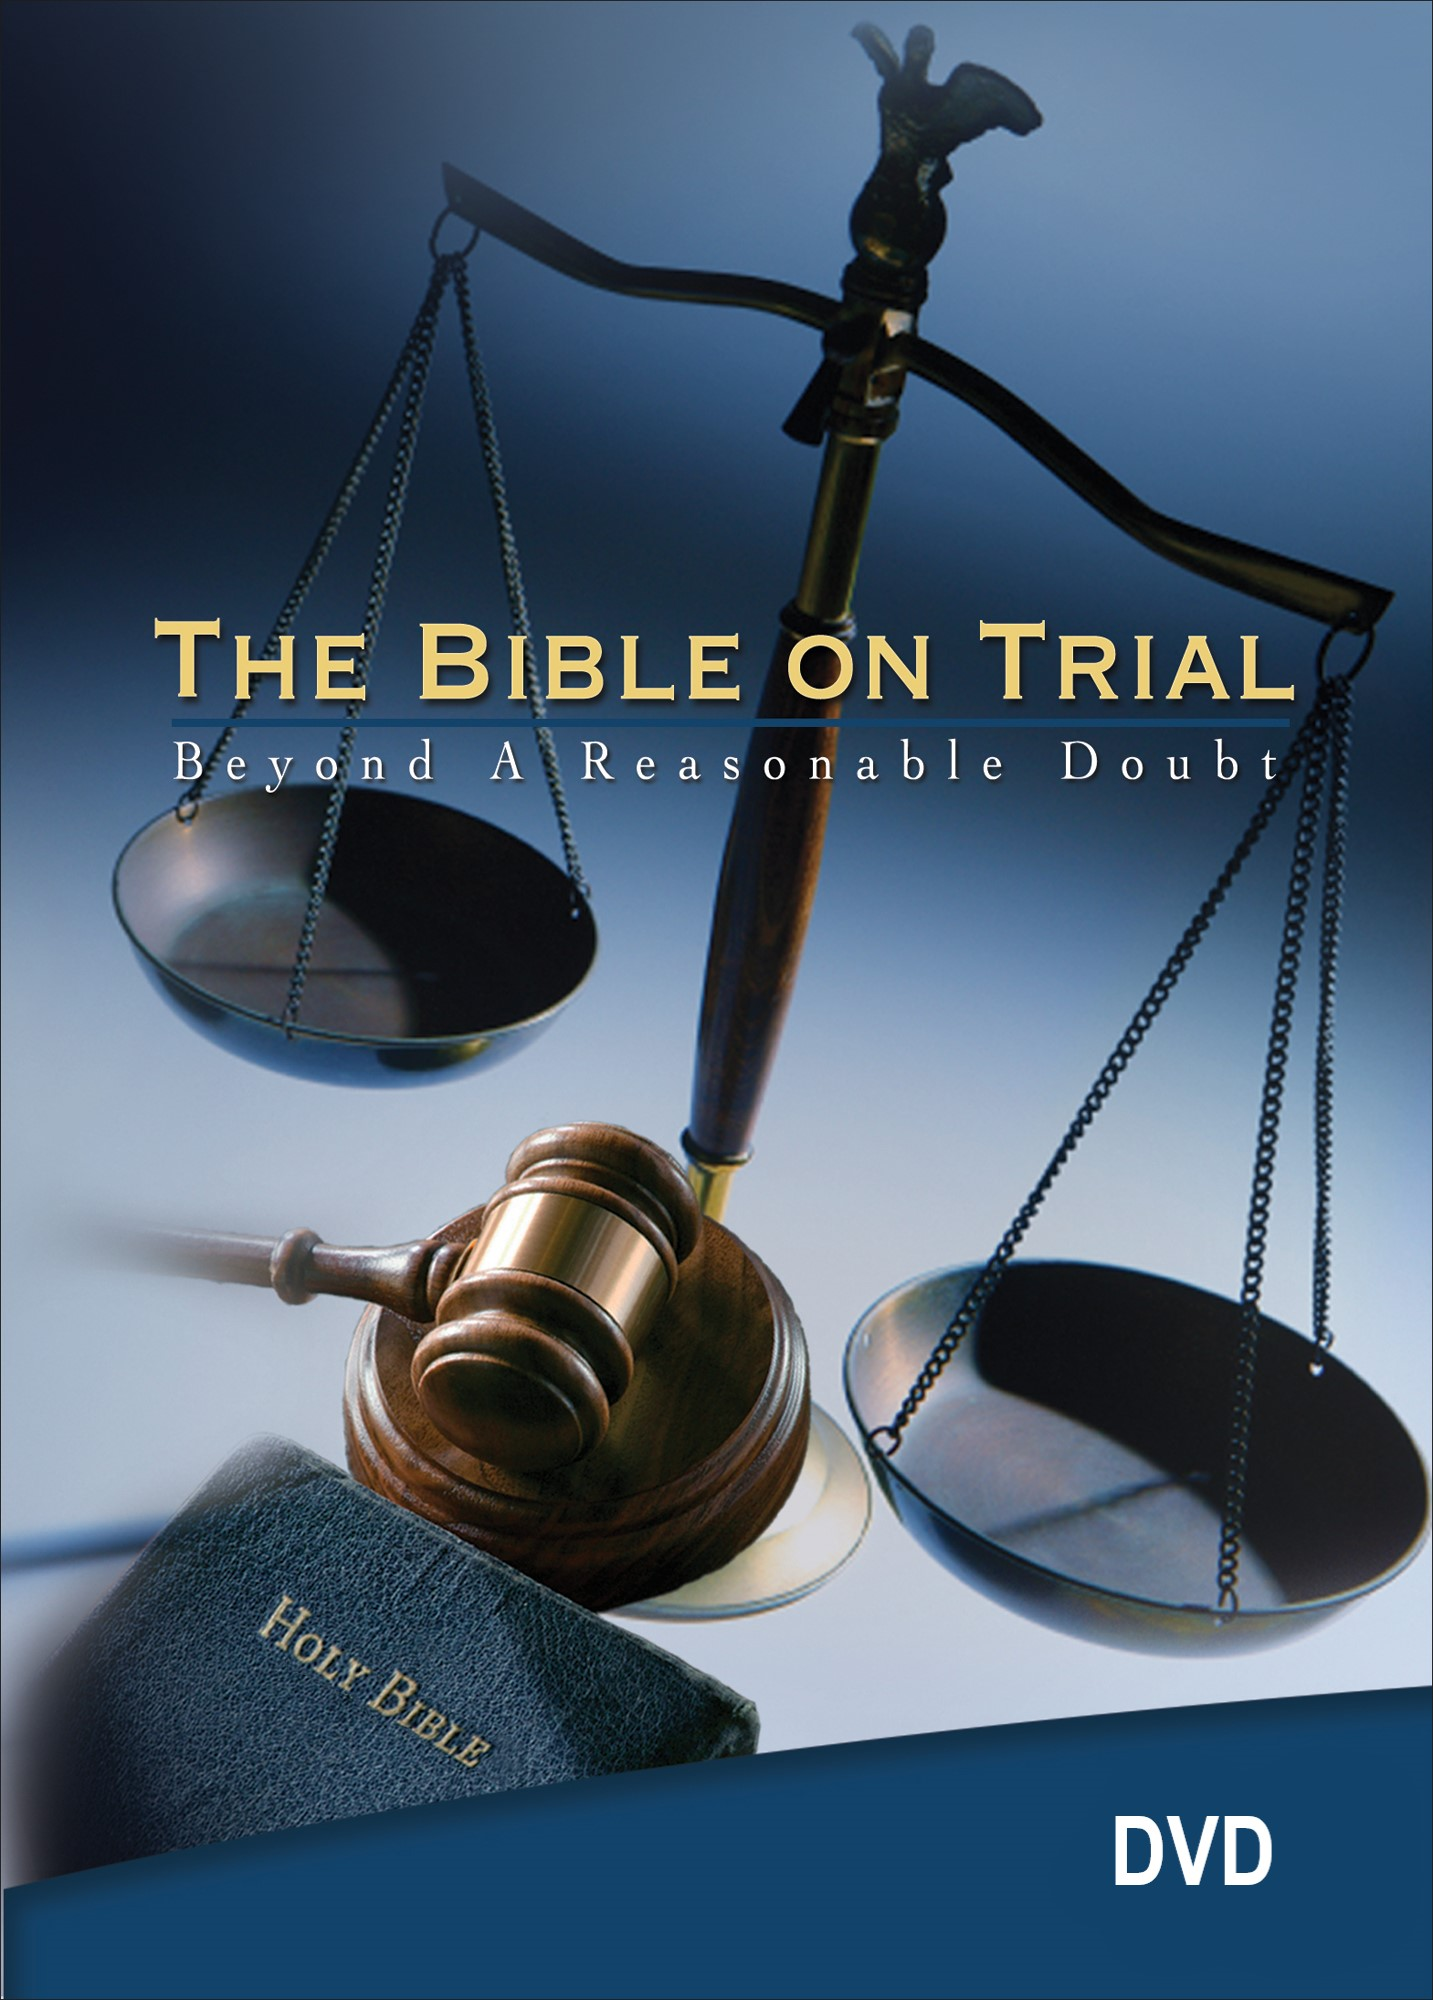 BibleOnTrial cover DVD